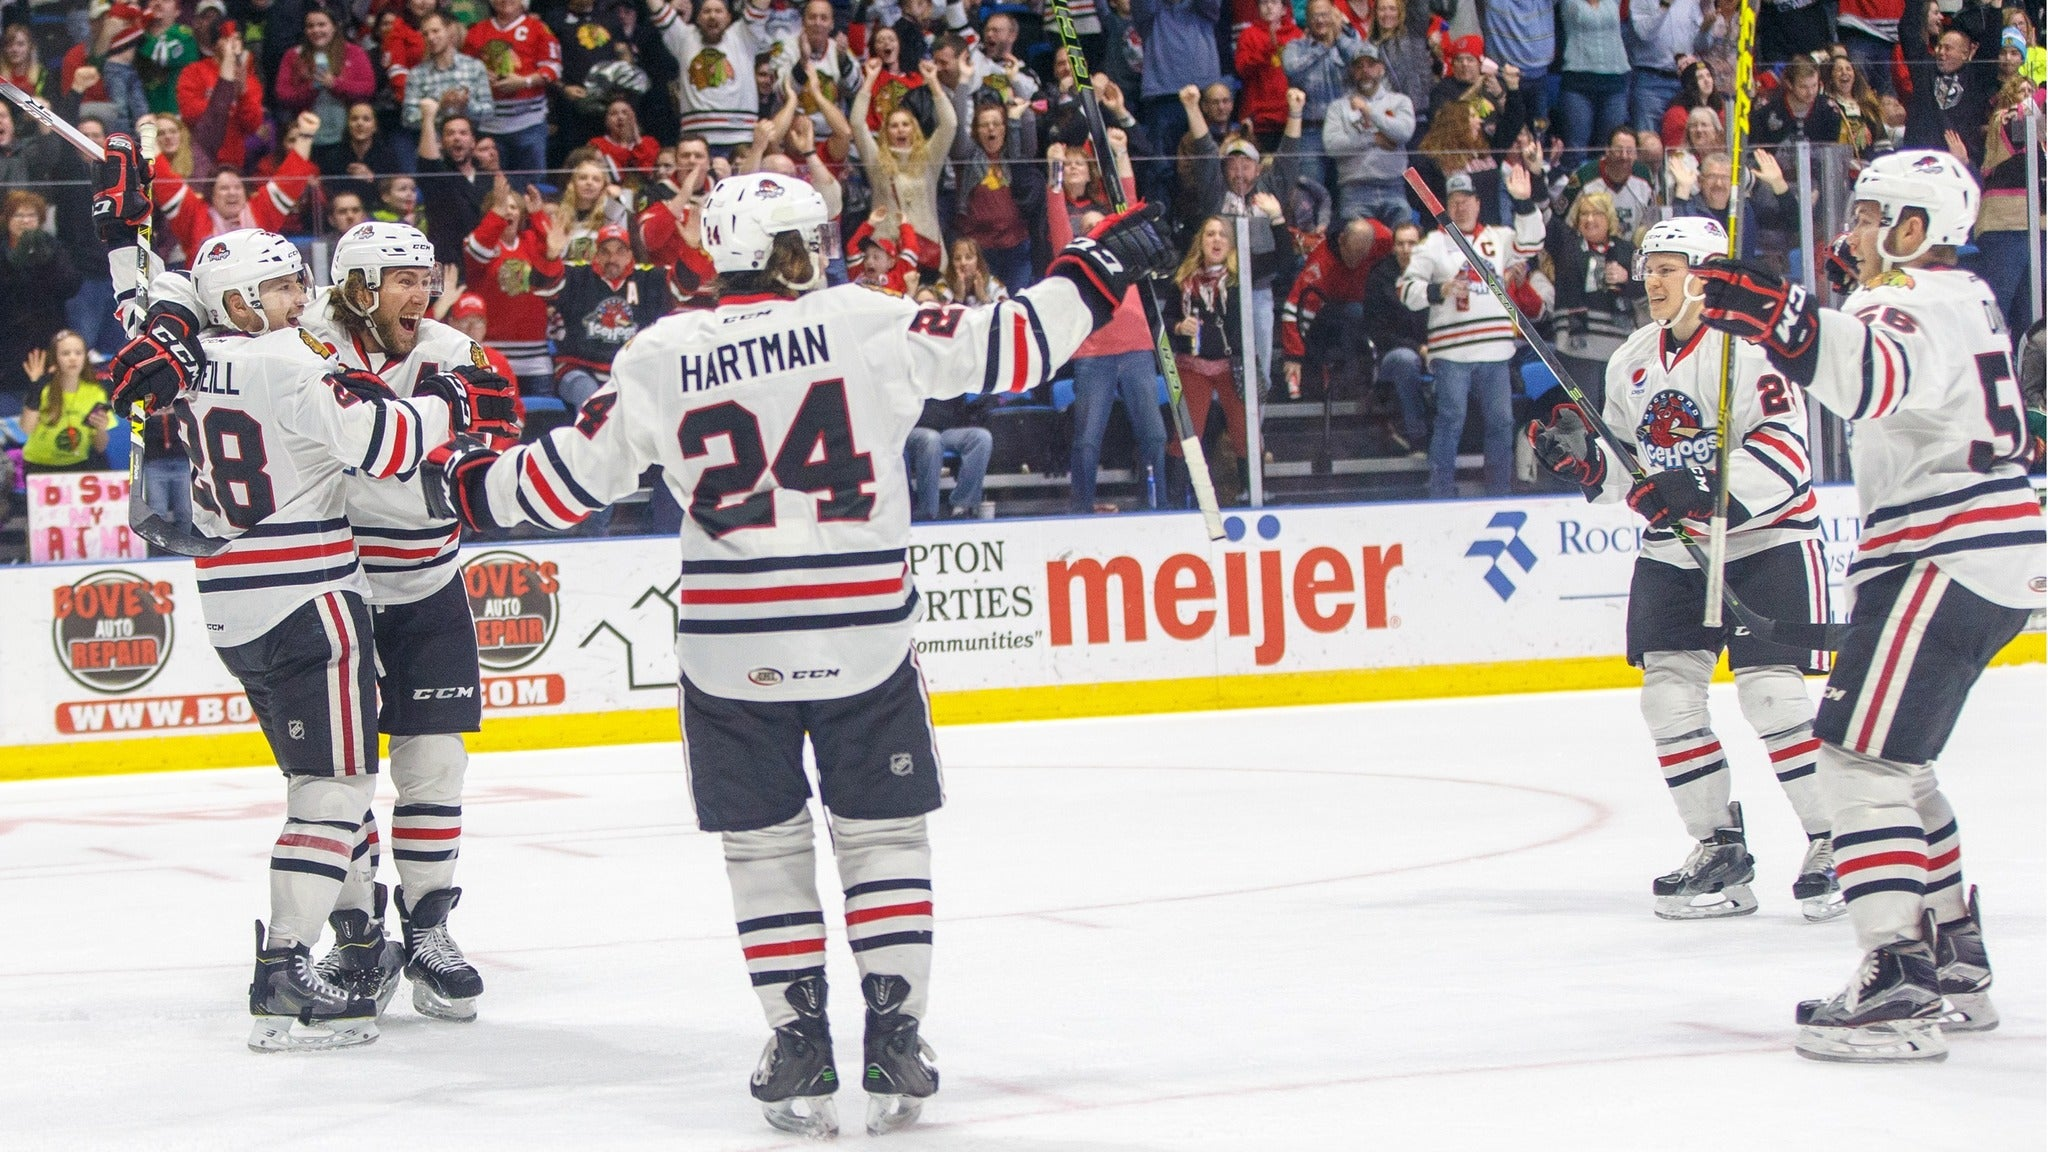 Rockford Icehogs Vs Milwaukee Admirals - Rockford, IL 61101